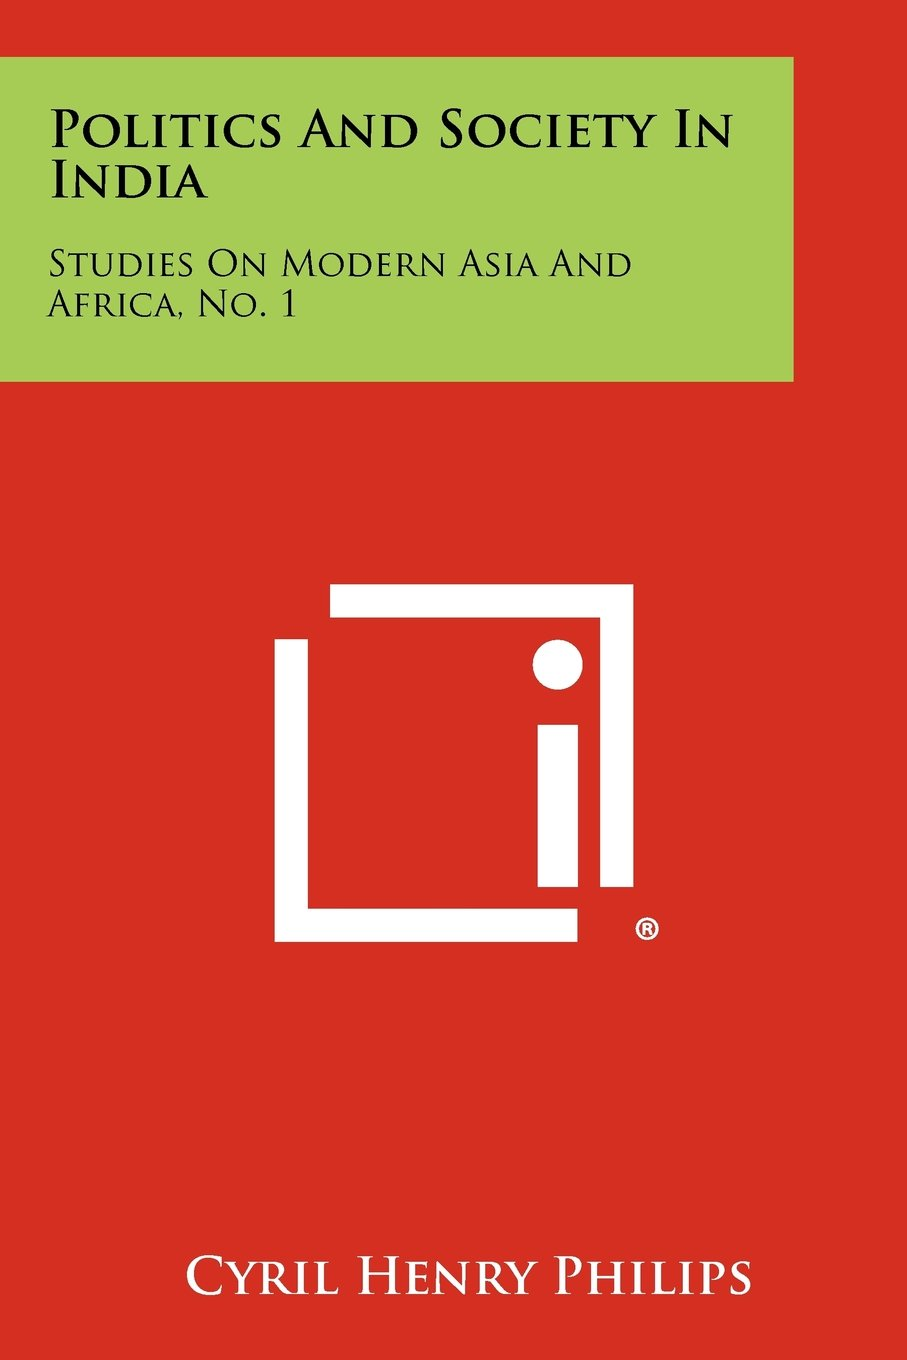 Politics and Society in India: Studies on Modern Asia and Africa, No. 1 ebook